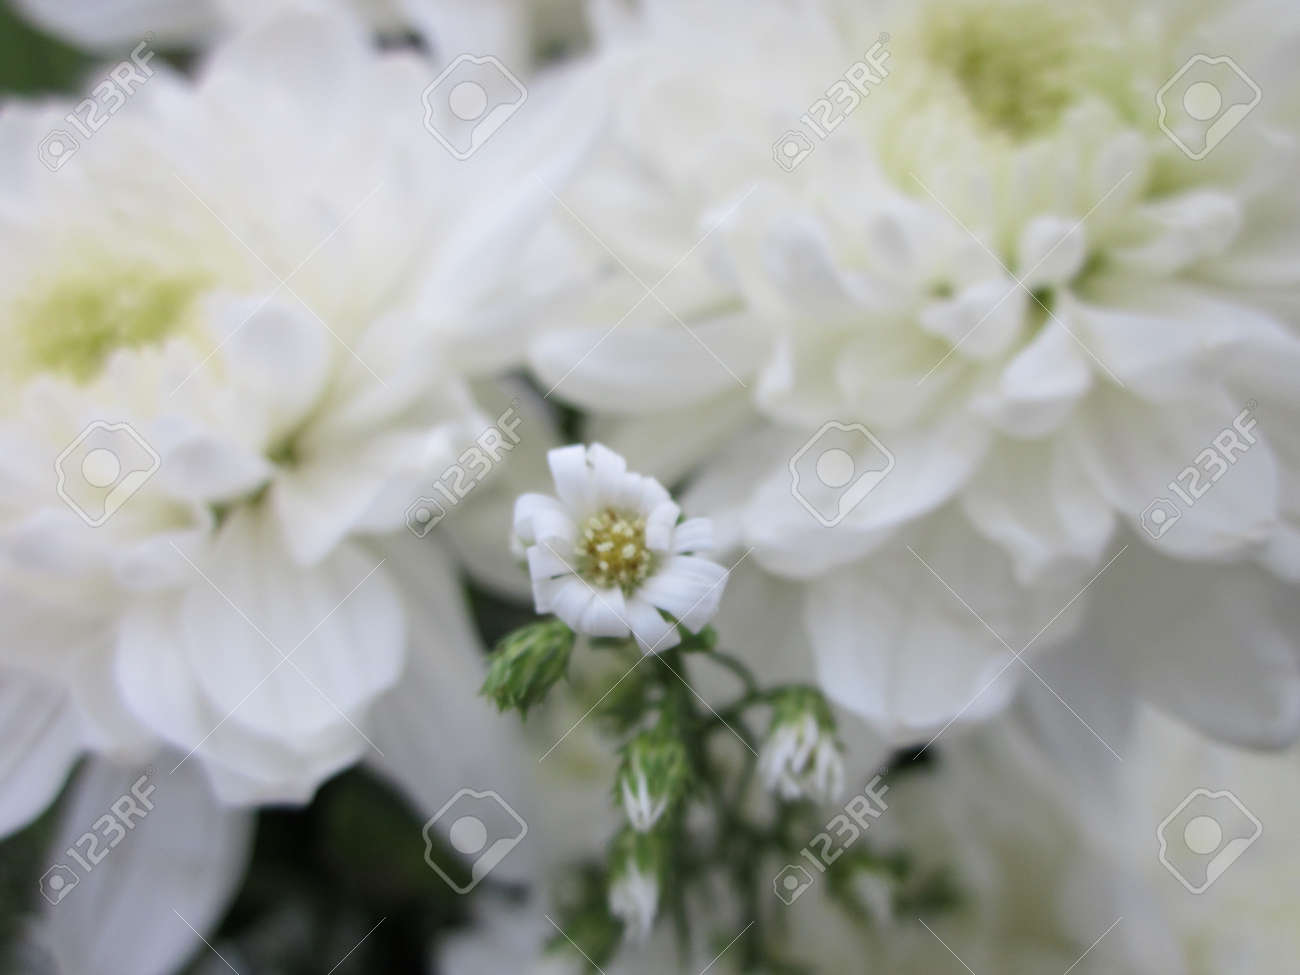 Big And Small White Flowers Stock Photo Picture And Royalty Free